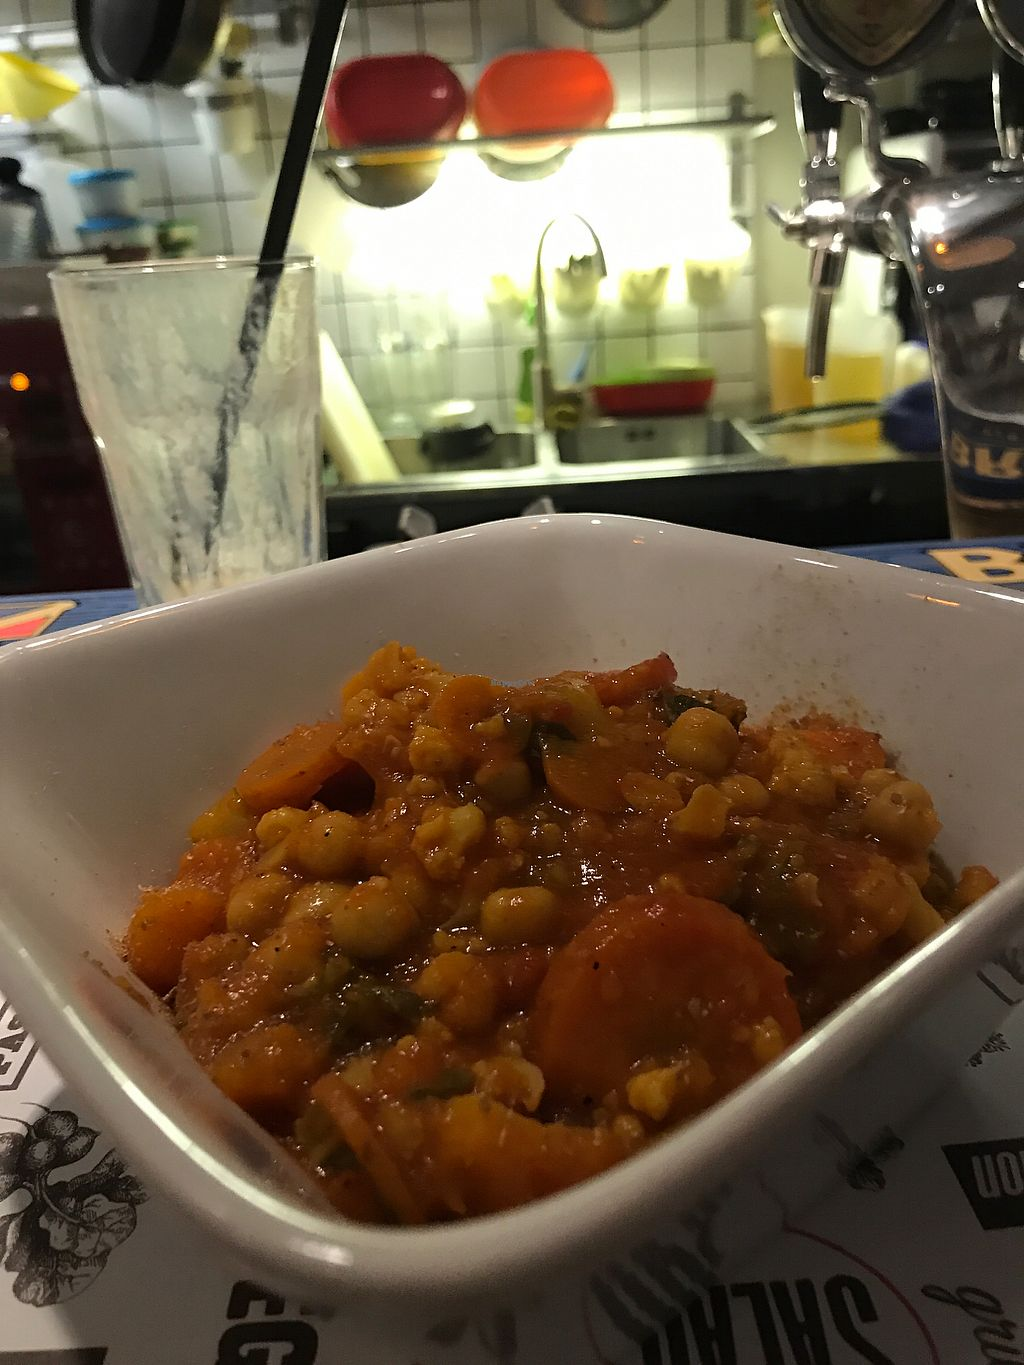 """Photo of Marta's Veggie Fusion  by <a href=""""/members/profile/candybaaby"""">candybaaby</a> <br/>Chickpea stew with brown rice <br/> September 19, 2017  - <a href='/contact/abuse/image/89393/305949'>Report</a>"""